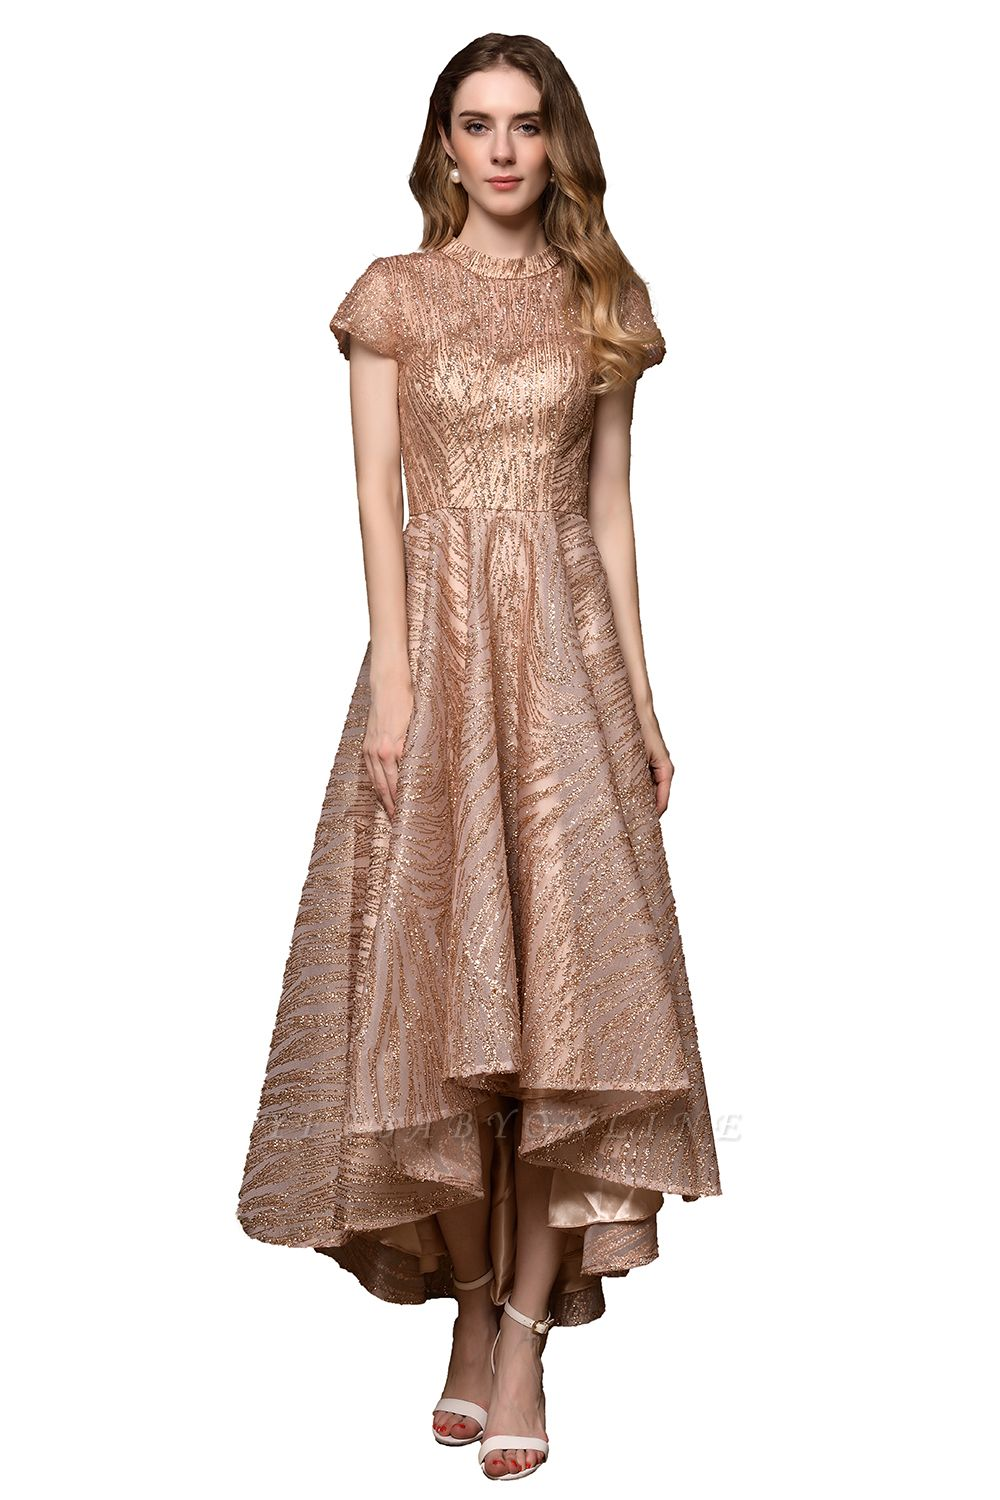 Champagne High Neck Short Sleeve Sequined A Line Prom Dress   Tea Length Ruffles Evening Gown